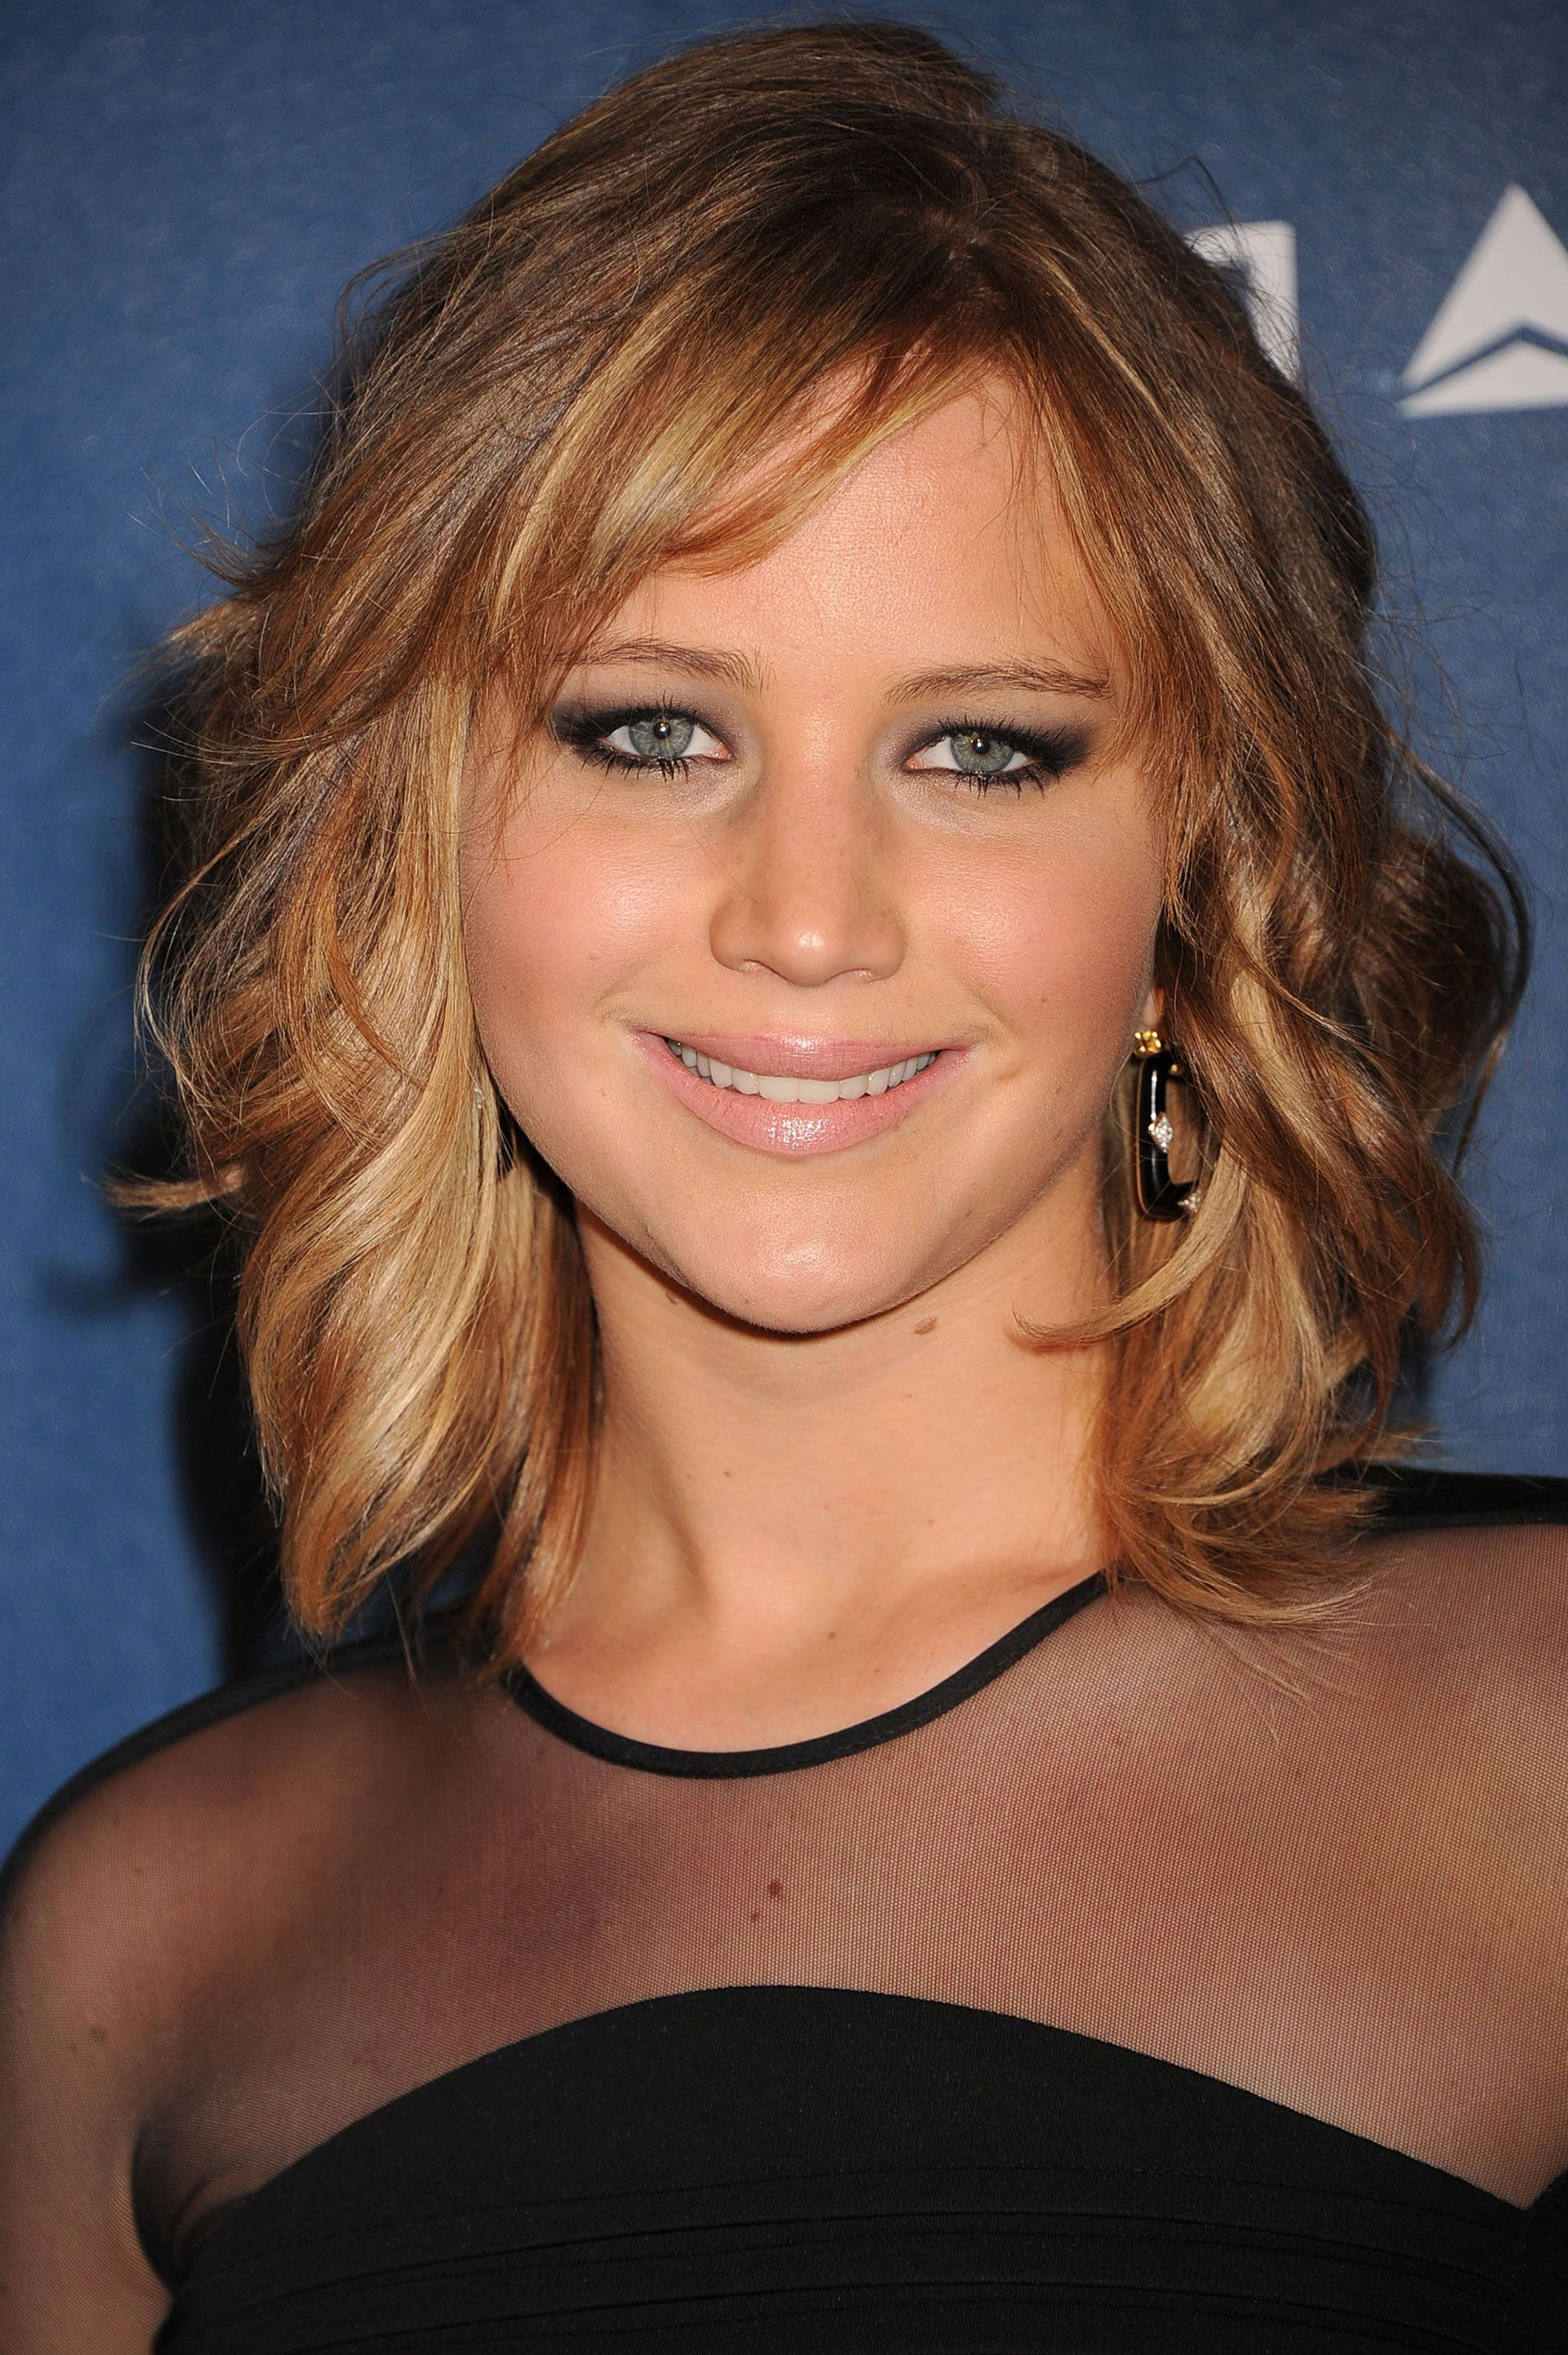 30 Best Hairstyles For Thick Hair – How To Style Thick Hair In Smooth Bob Hairstyles For Thick Hair (View 16 of 20)